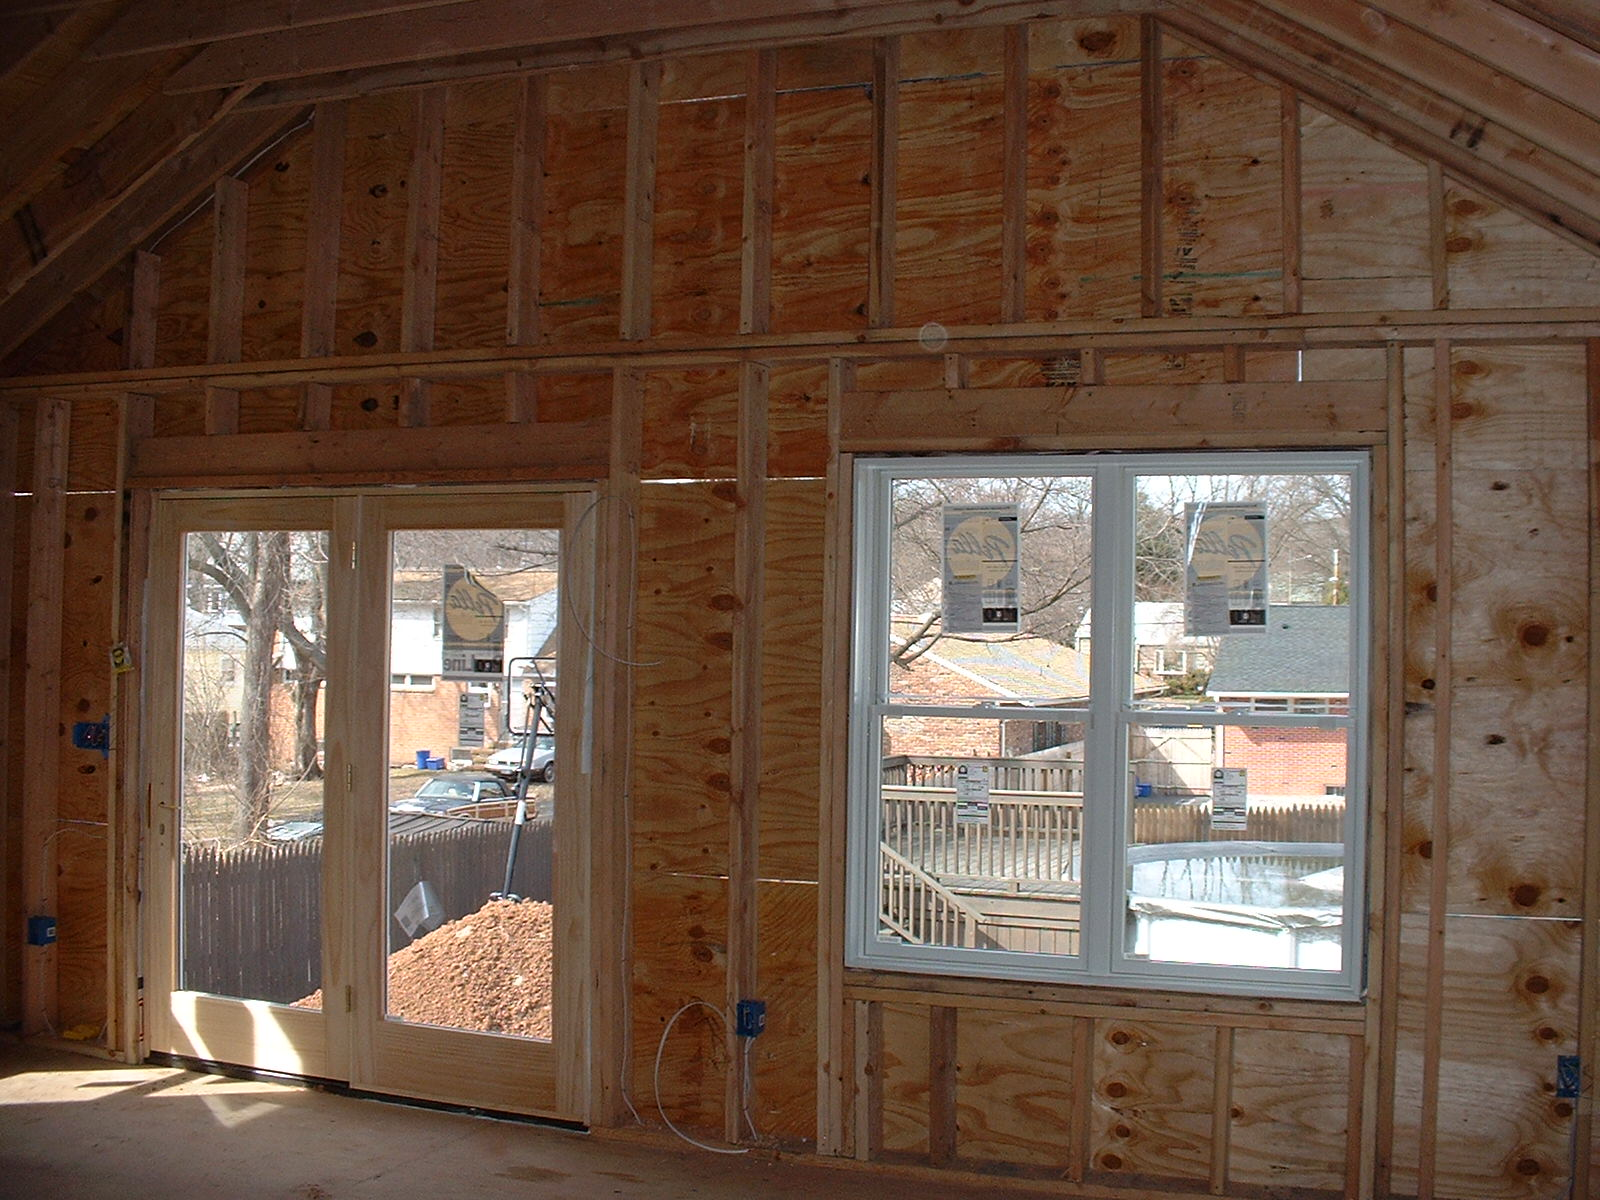 The inside view of the double window and the french door.